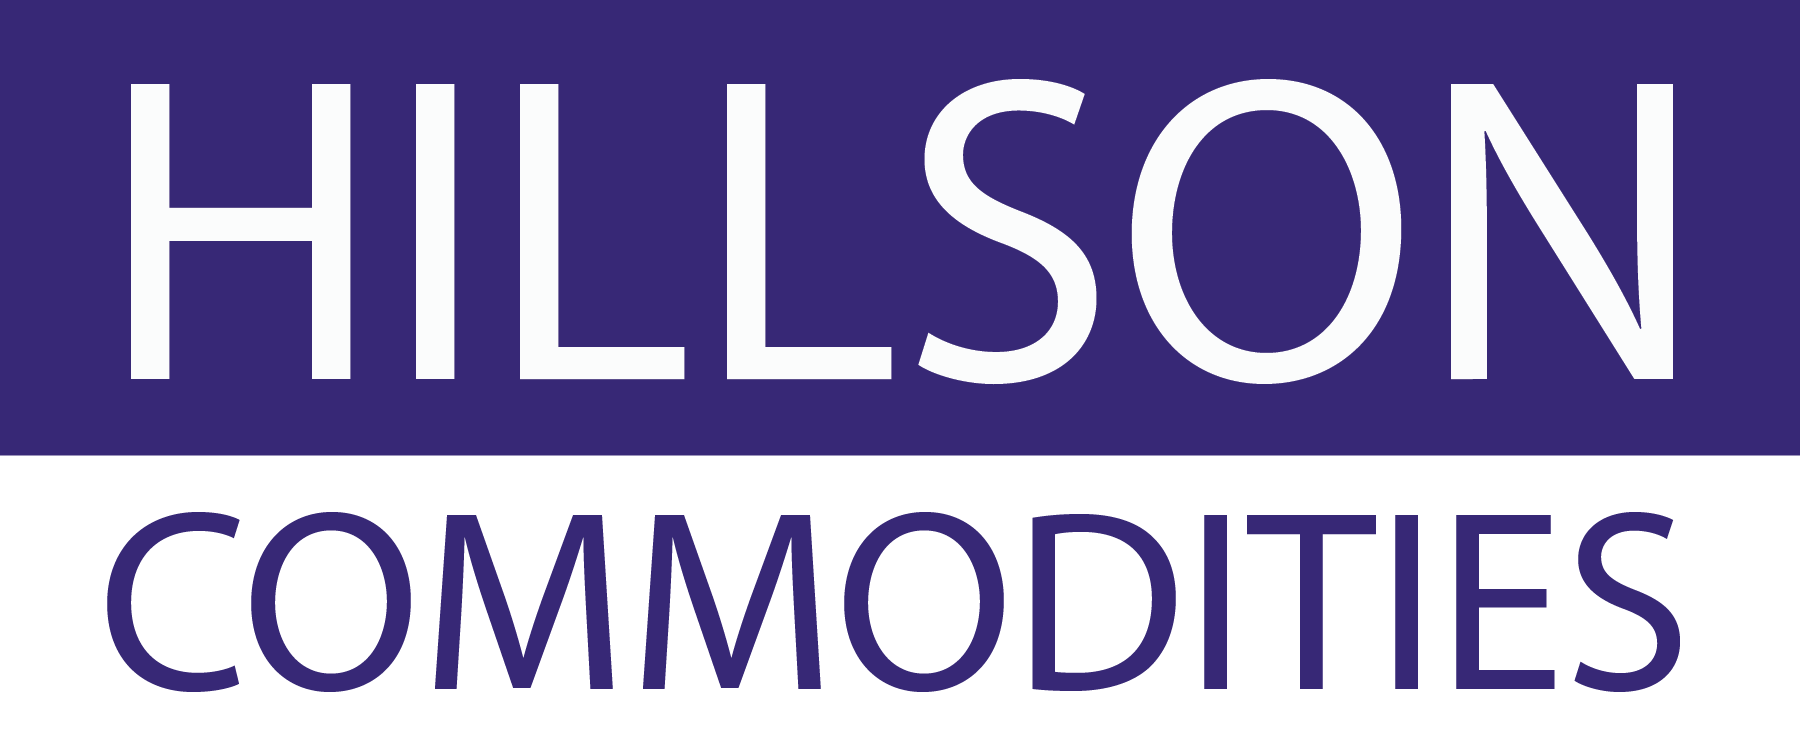 Hillson Commodities